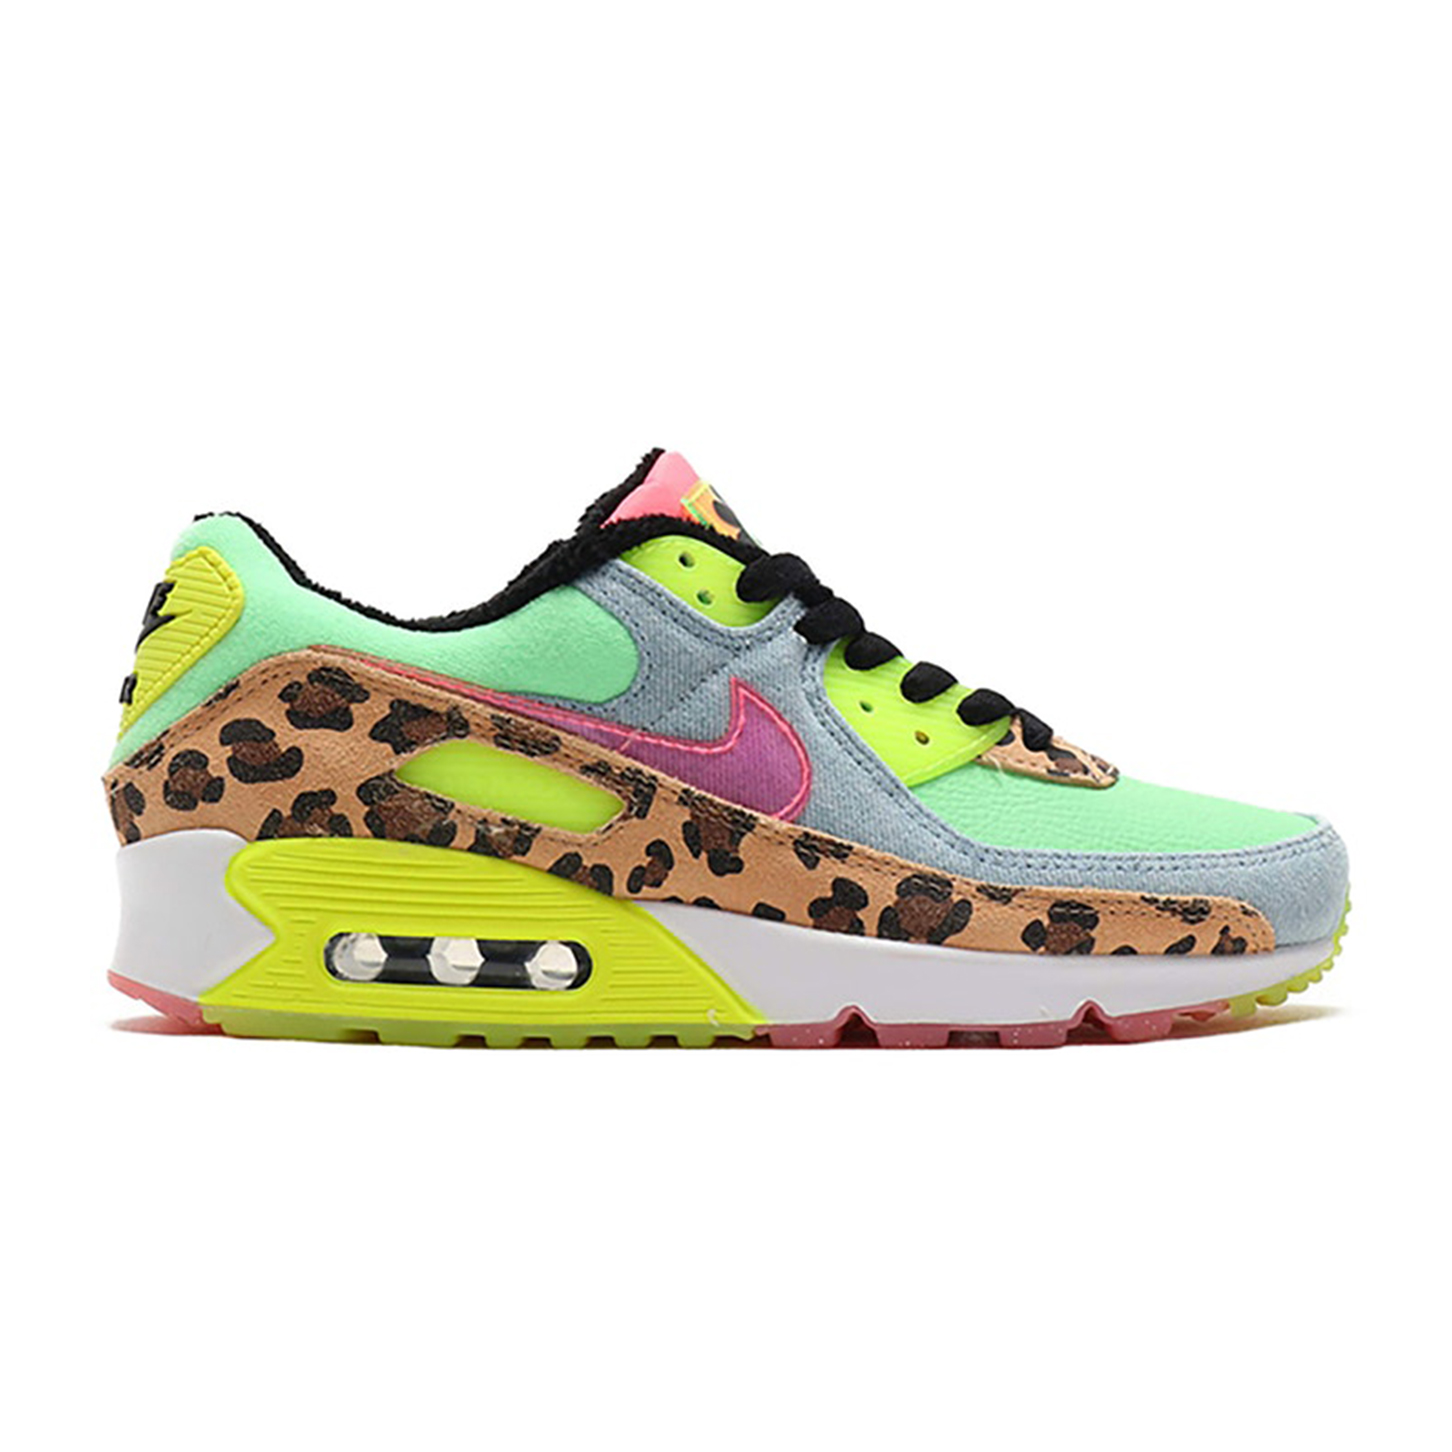 Nike-Air-Max-90-LX-90s-Dancefloor-Green-W